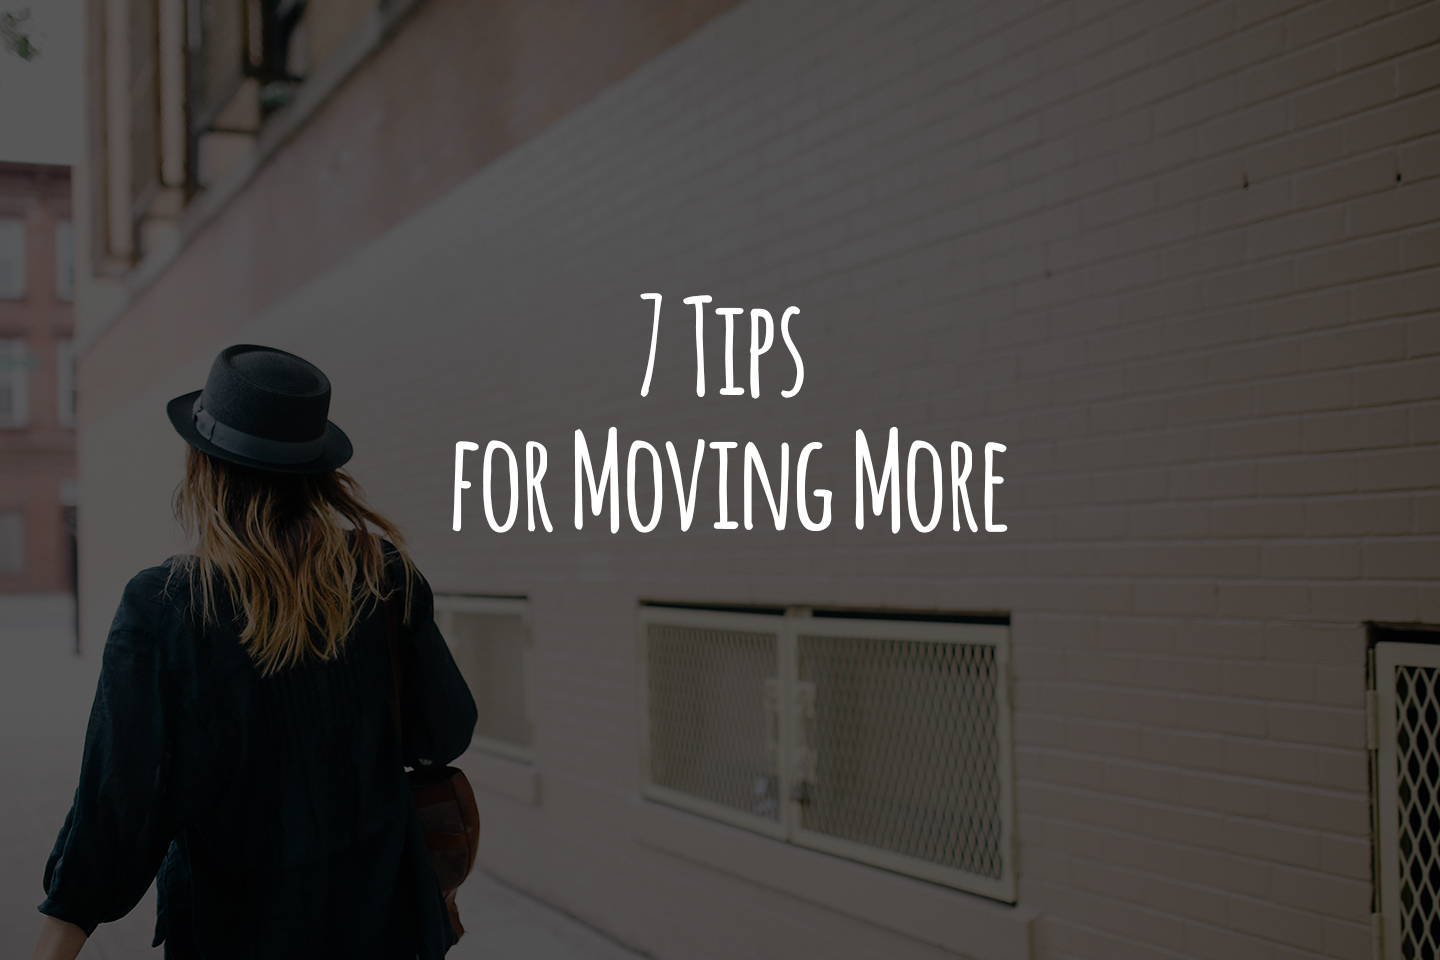 7 Tips for Moving More